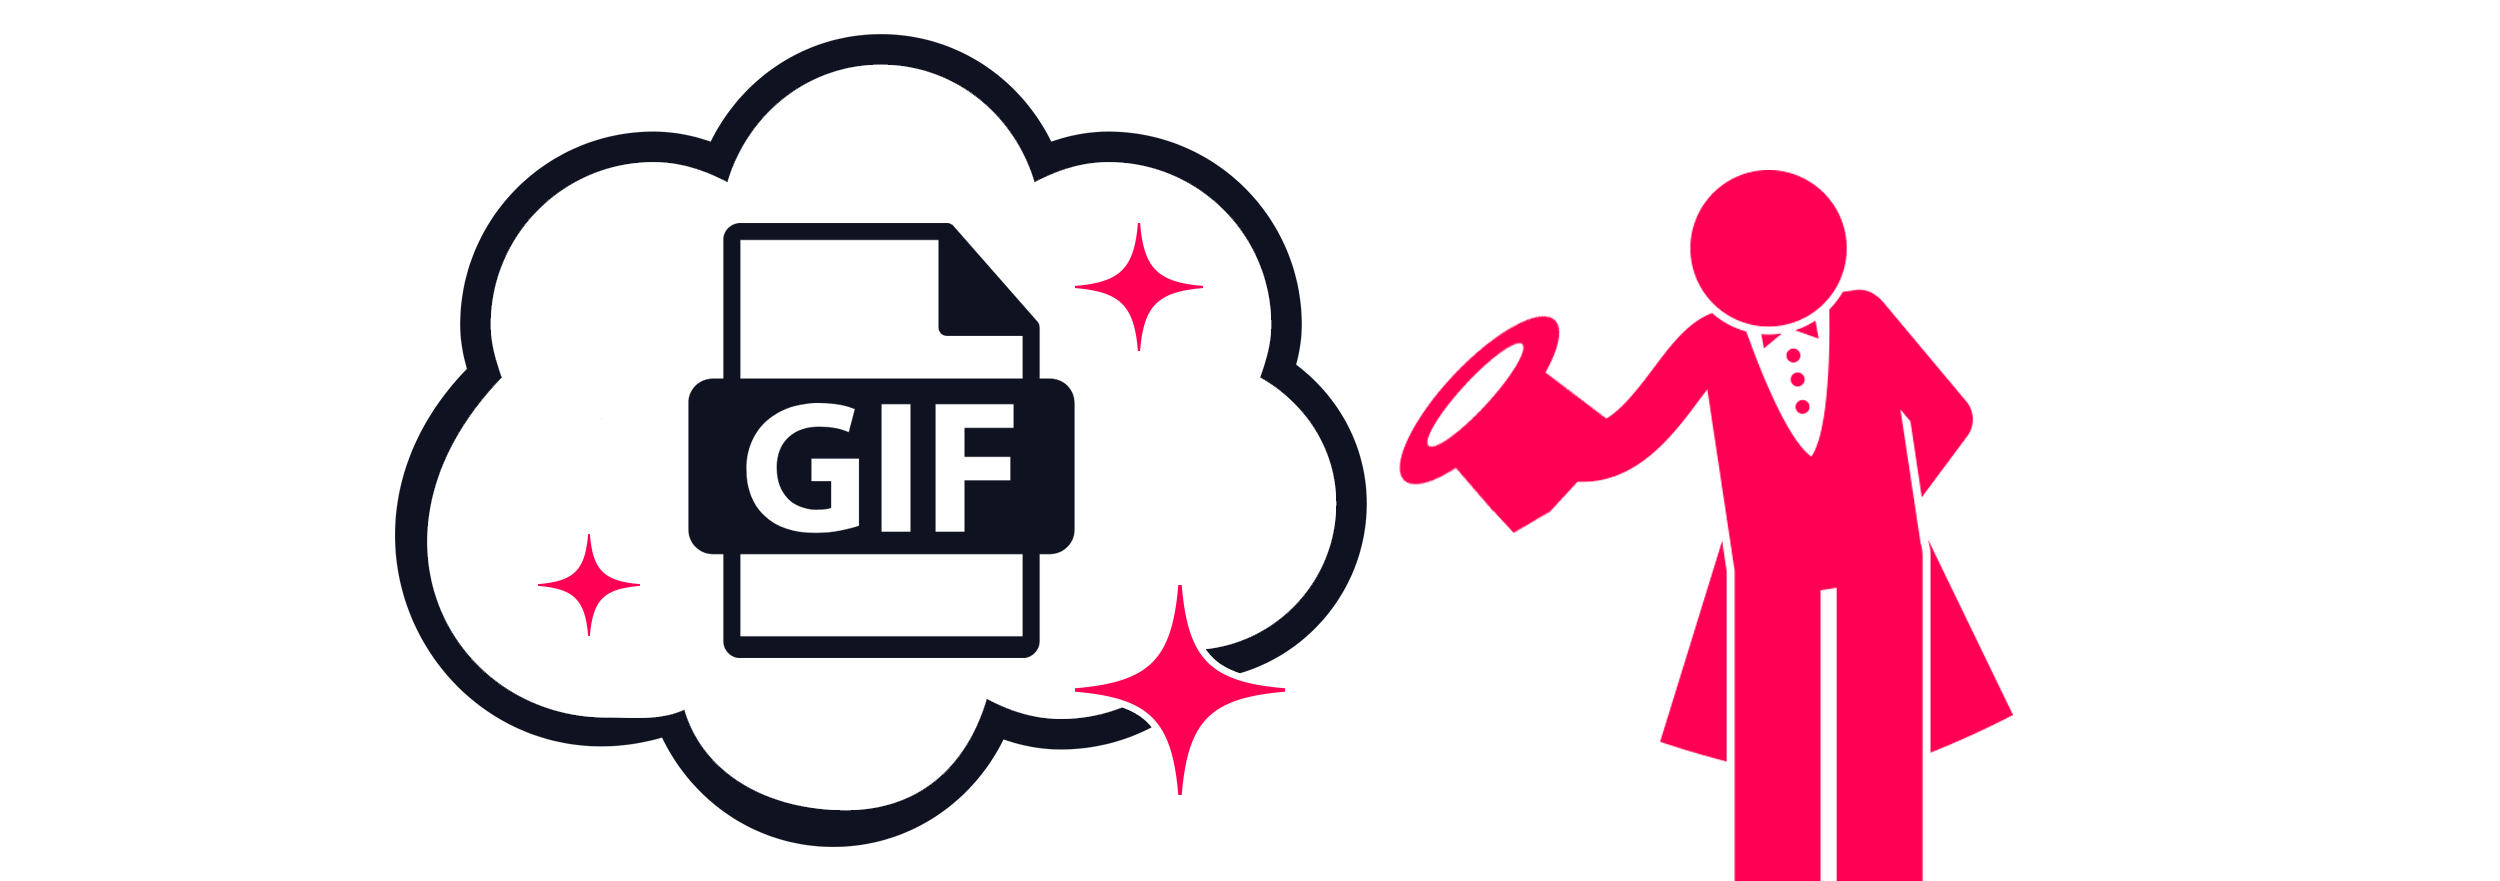 5 Ways To Make An Animated GIF (Without Photoshop!)